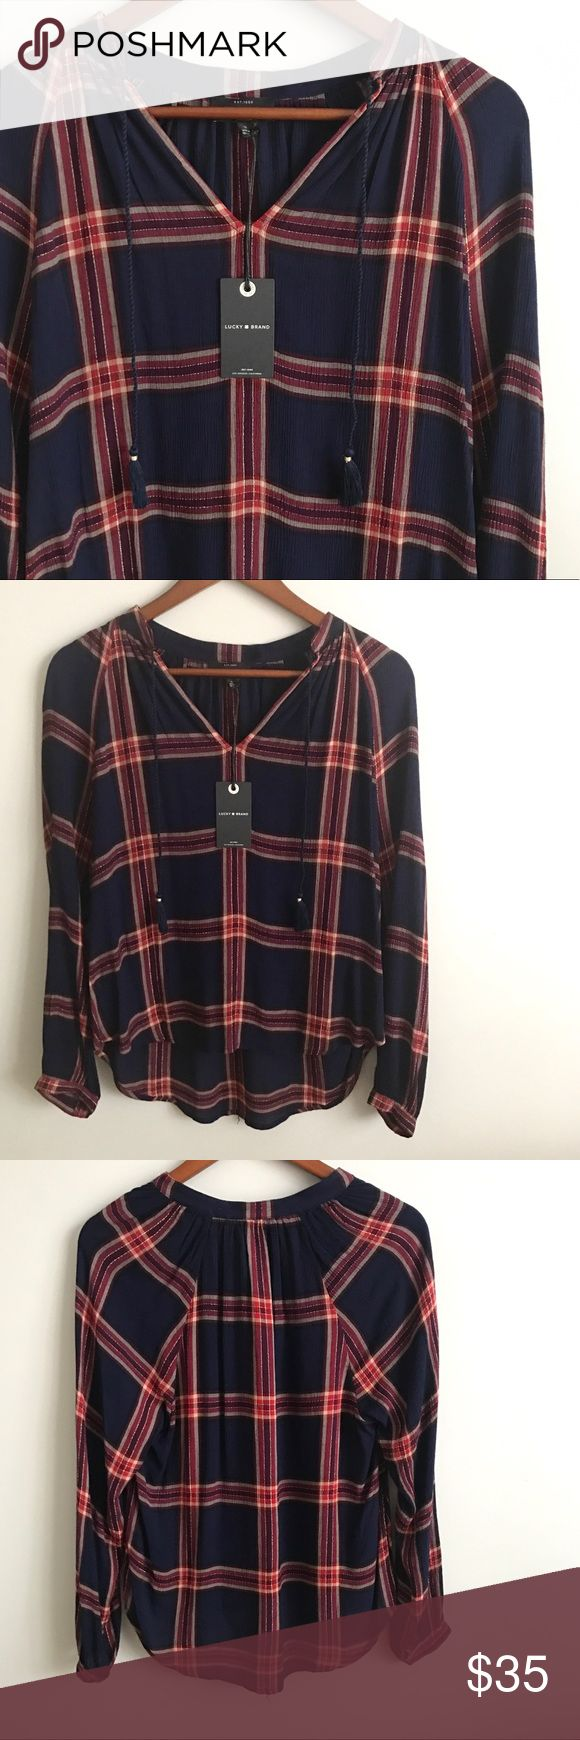 Lucky Brand Plaid Top Lucky Brand Top  - NWT  - Size small - Navy + red/pink plaid - V-neck with rope tassels - High/low lengths  - 100% rayon Lucky Brand Tops